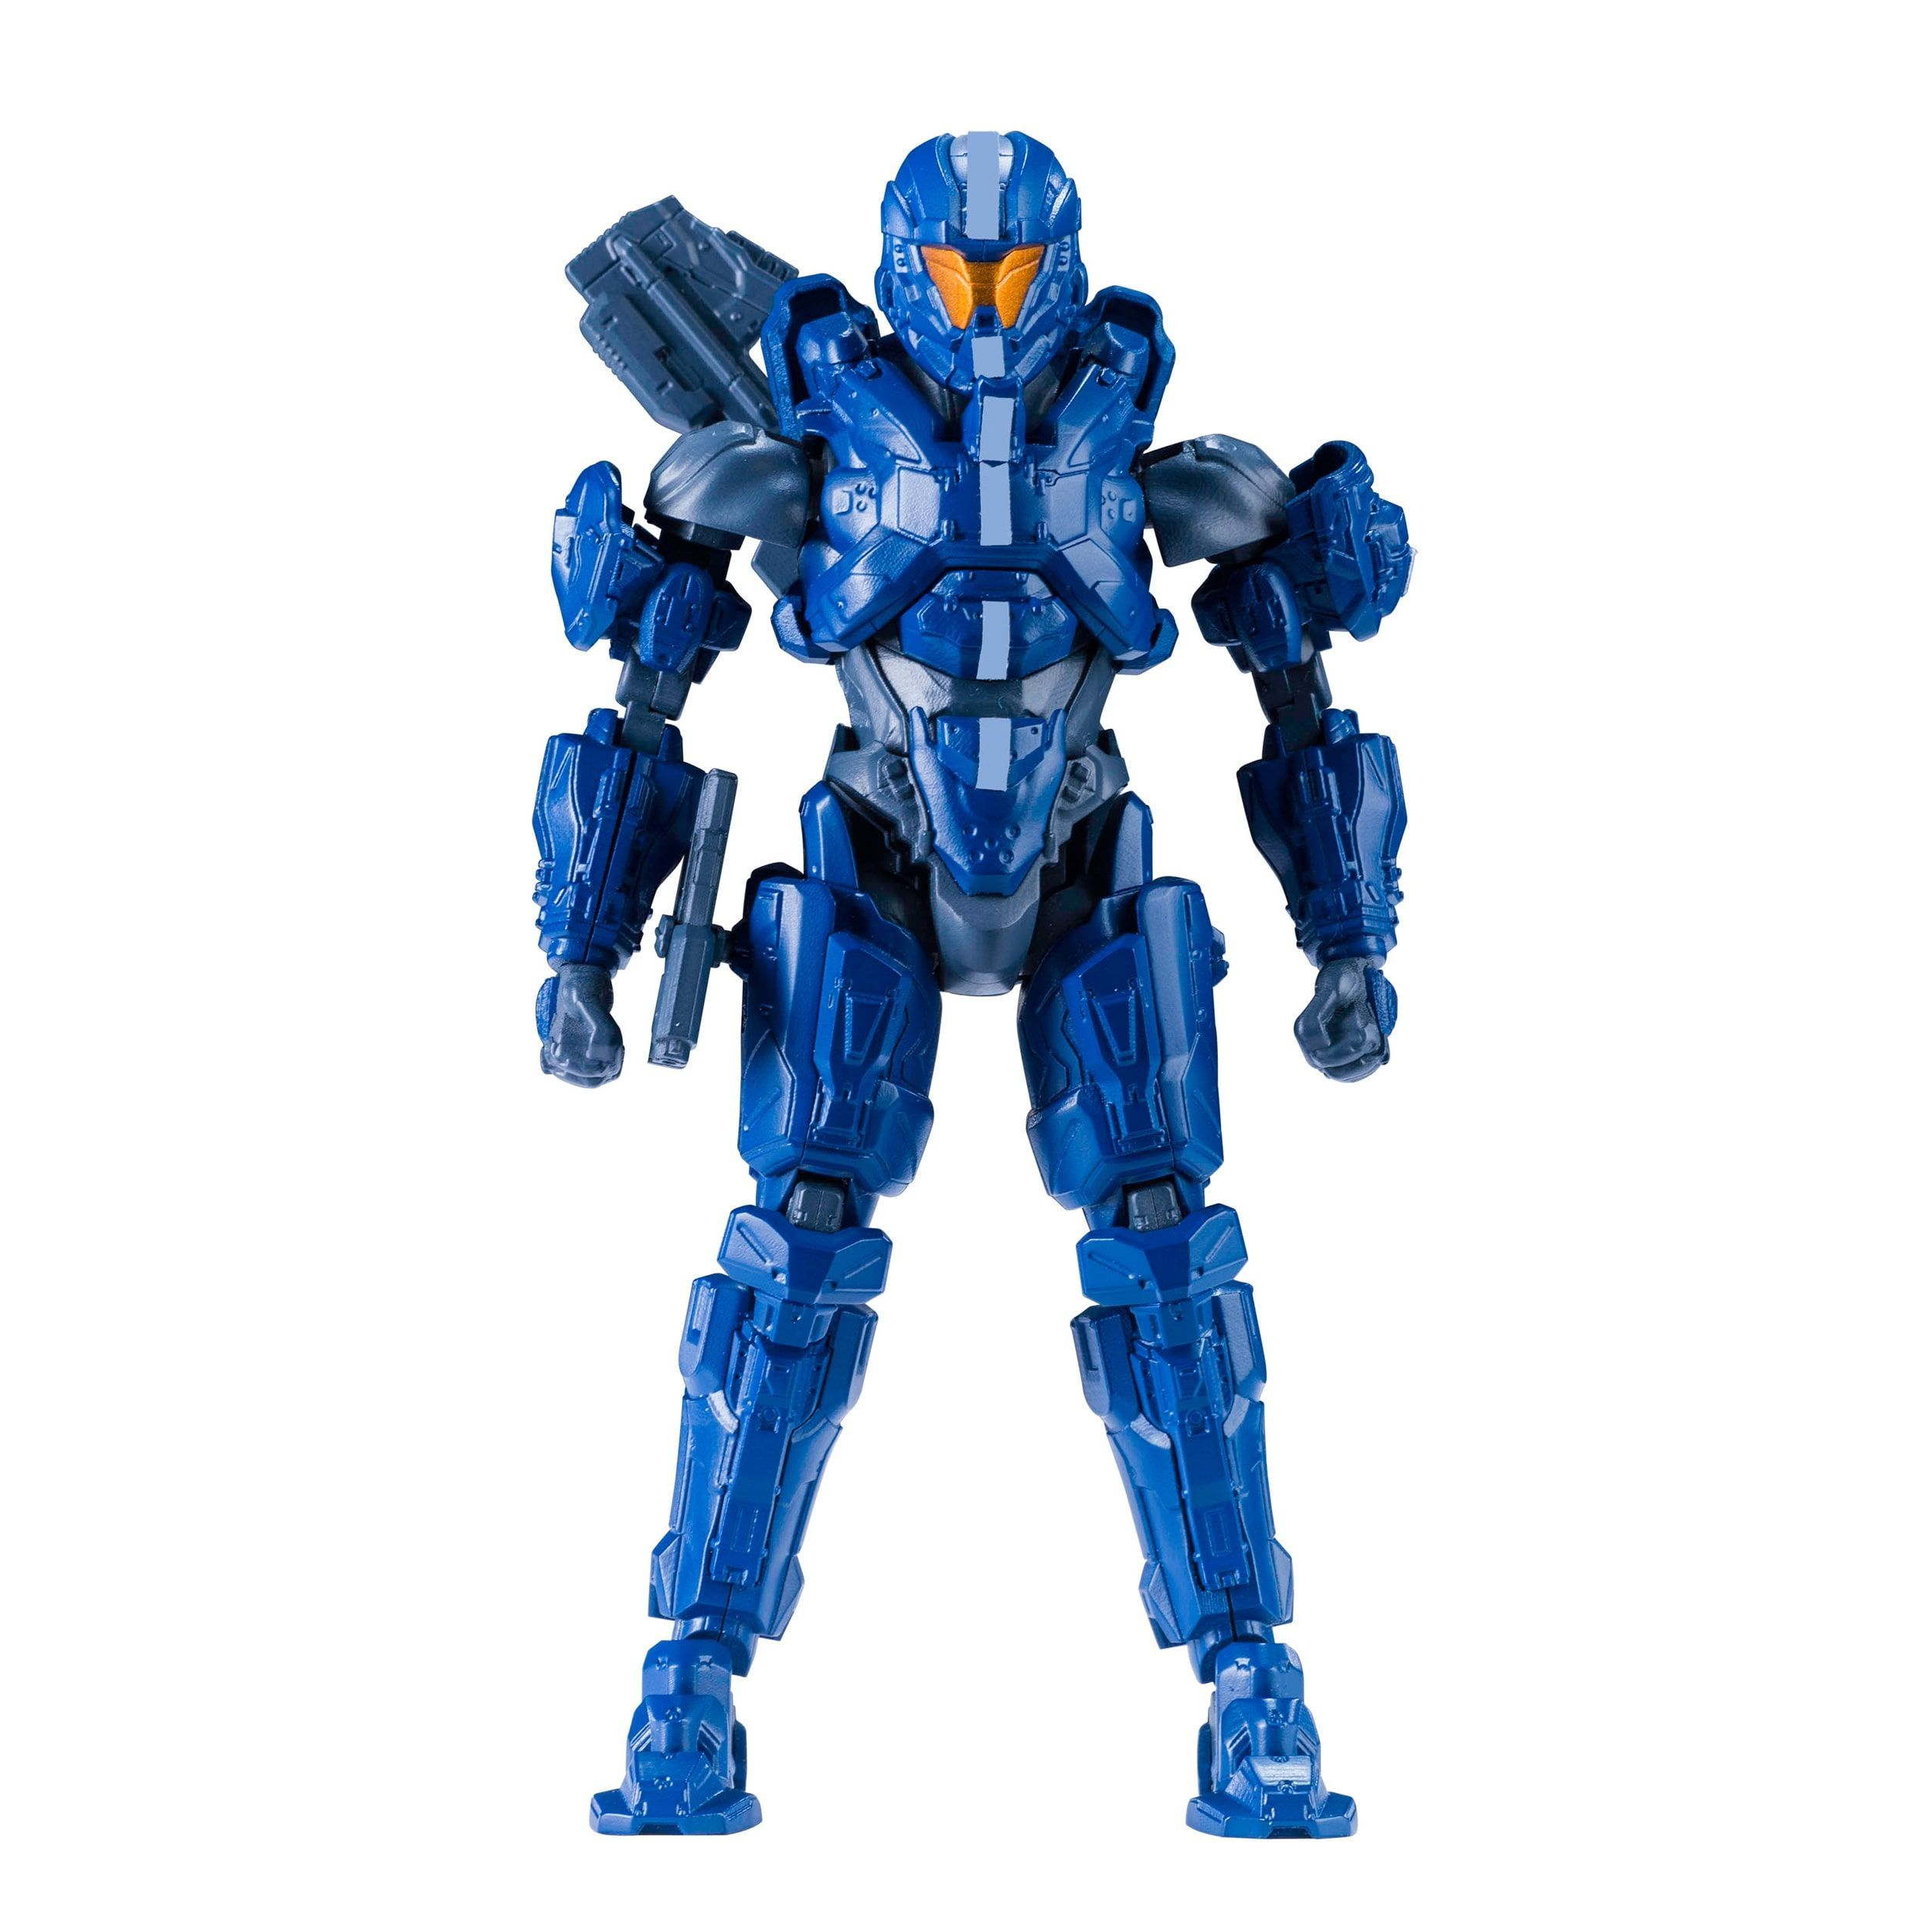 Bandai SpruKits Halo Spartan Gabriel Throne Action Figure